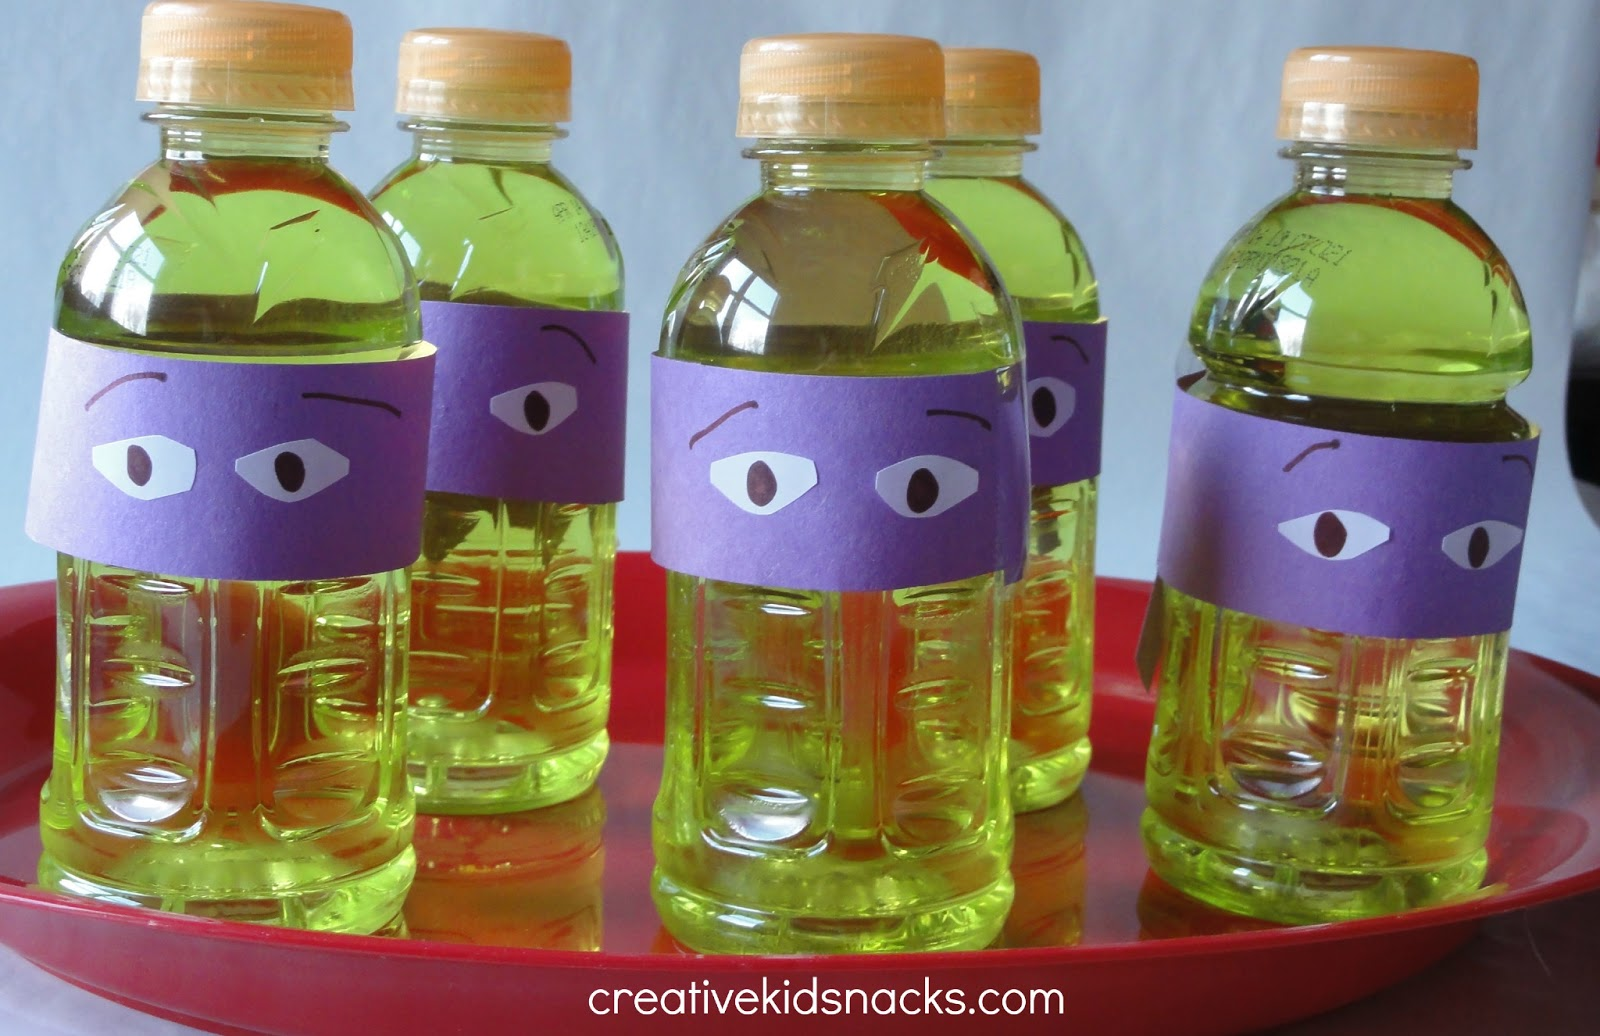 Creative Birthday Party Food: Teenage Mutant Ninja Turtles